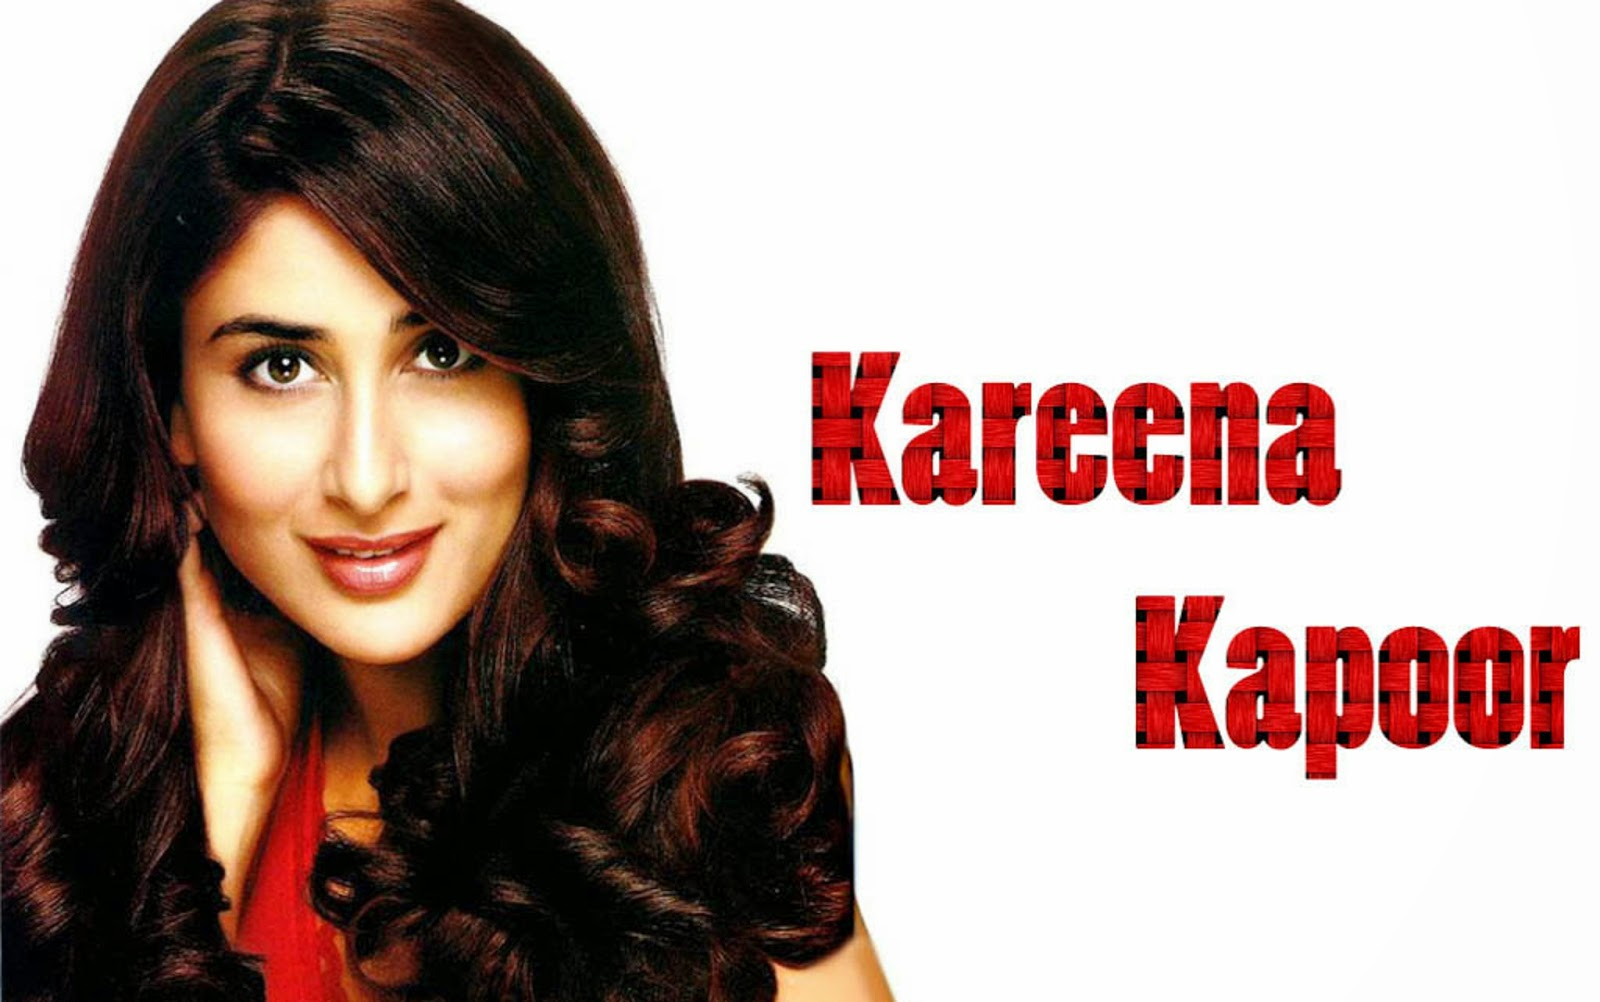 Kareena Kapoor HD Wallpaper